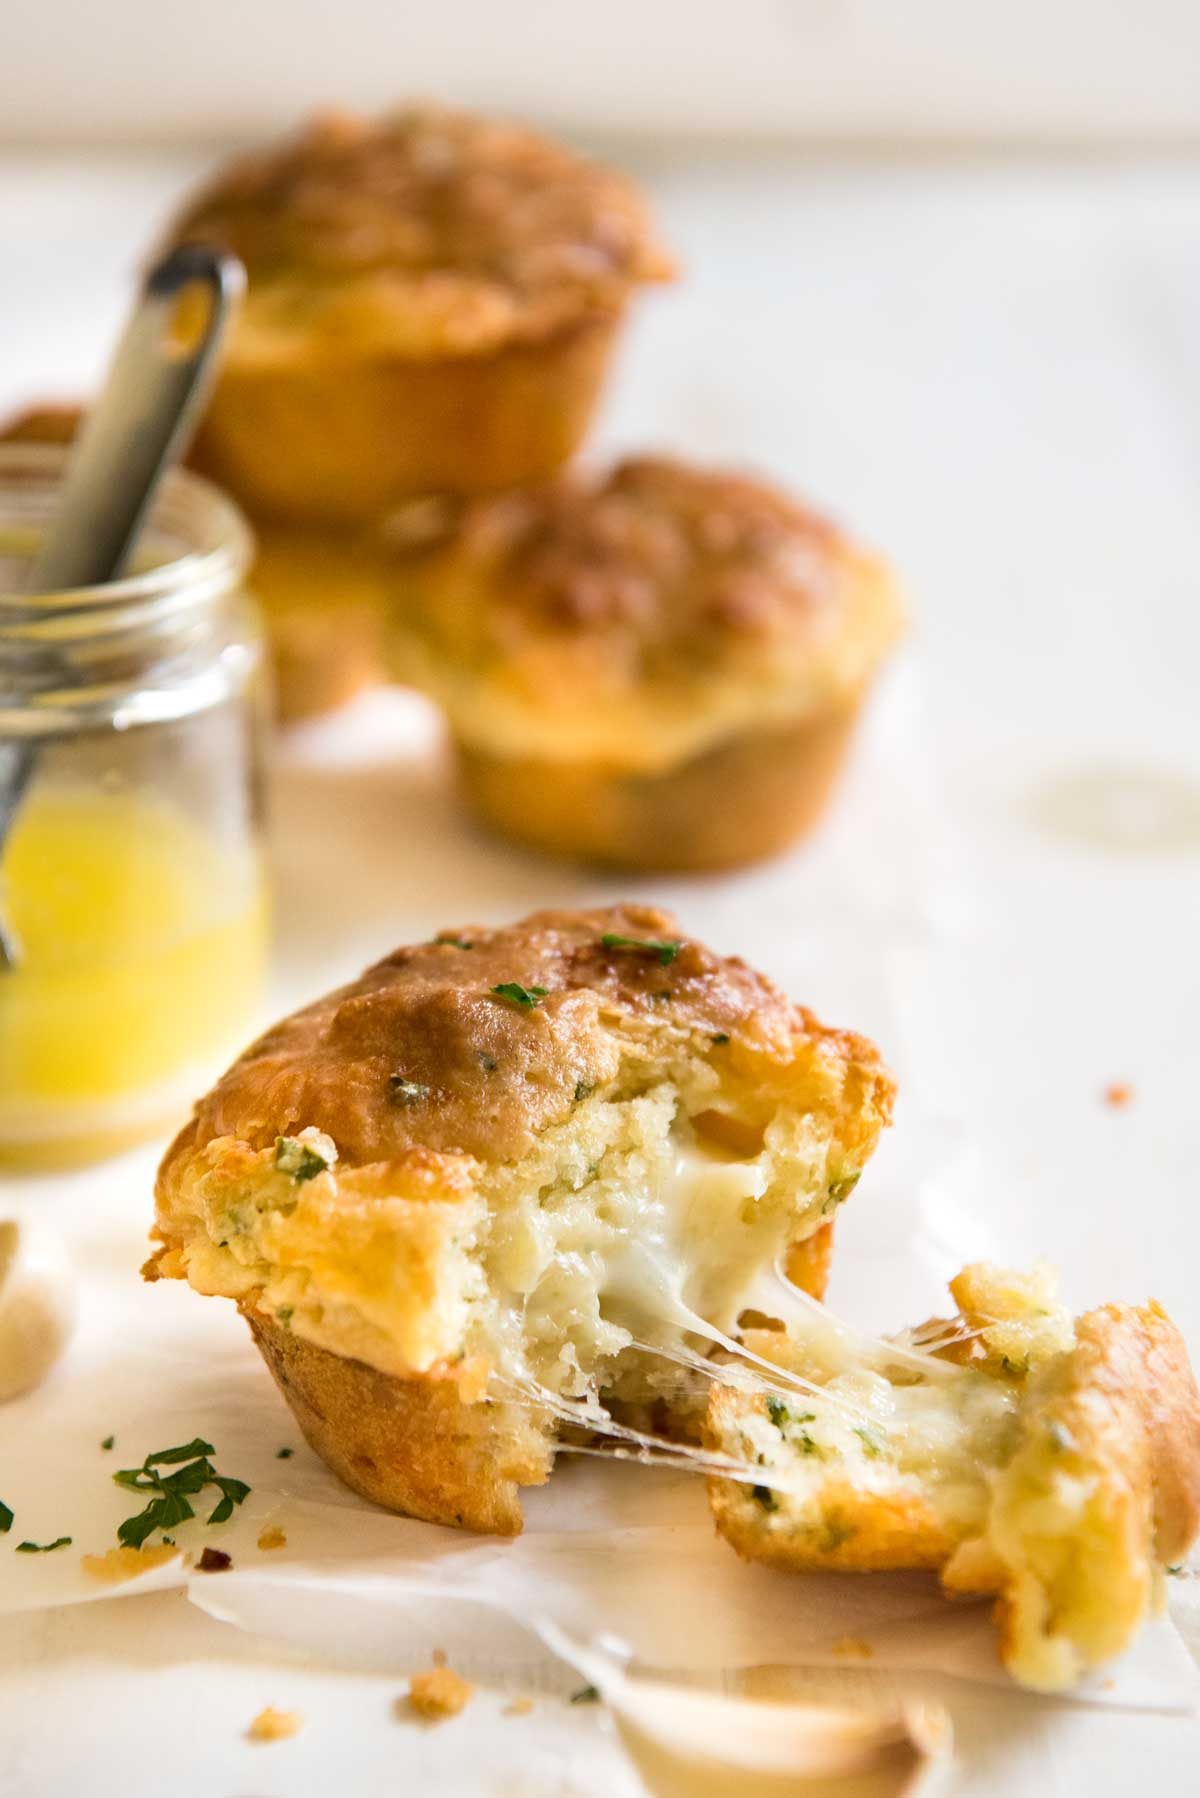 Cheese & Garlic Muffins from Recipe Tin Eats